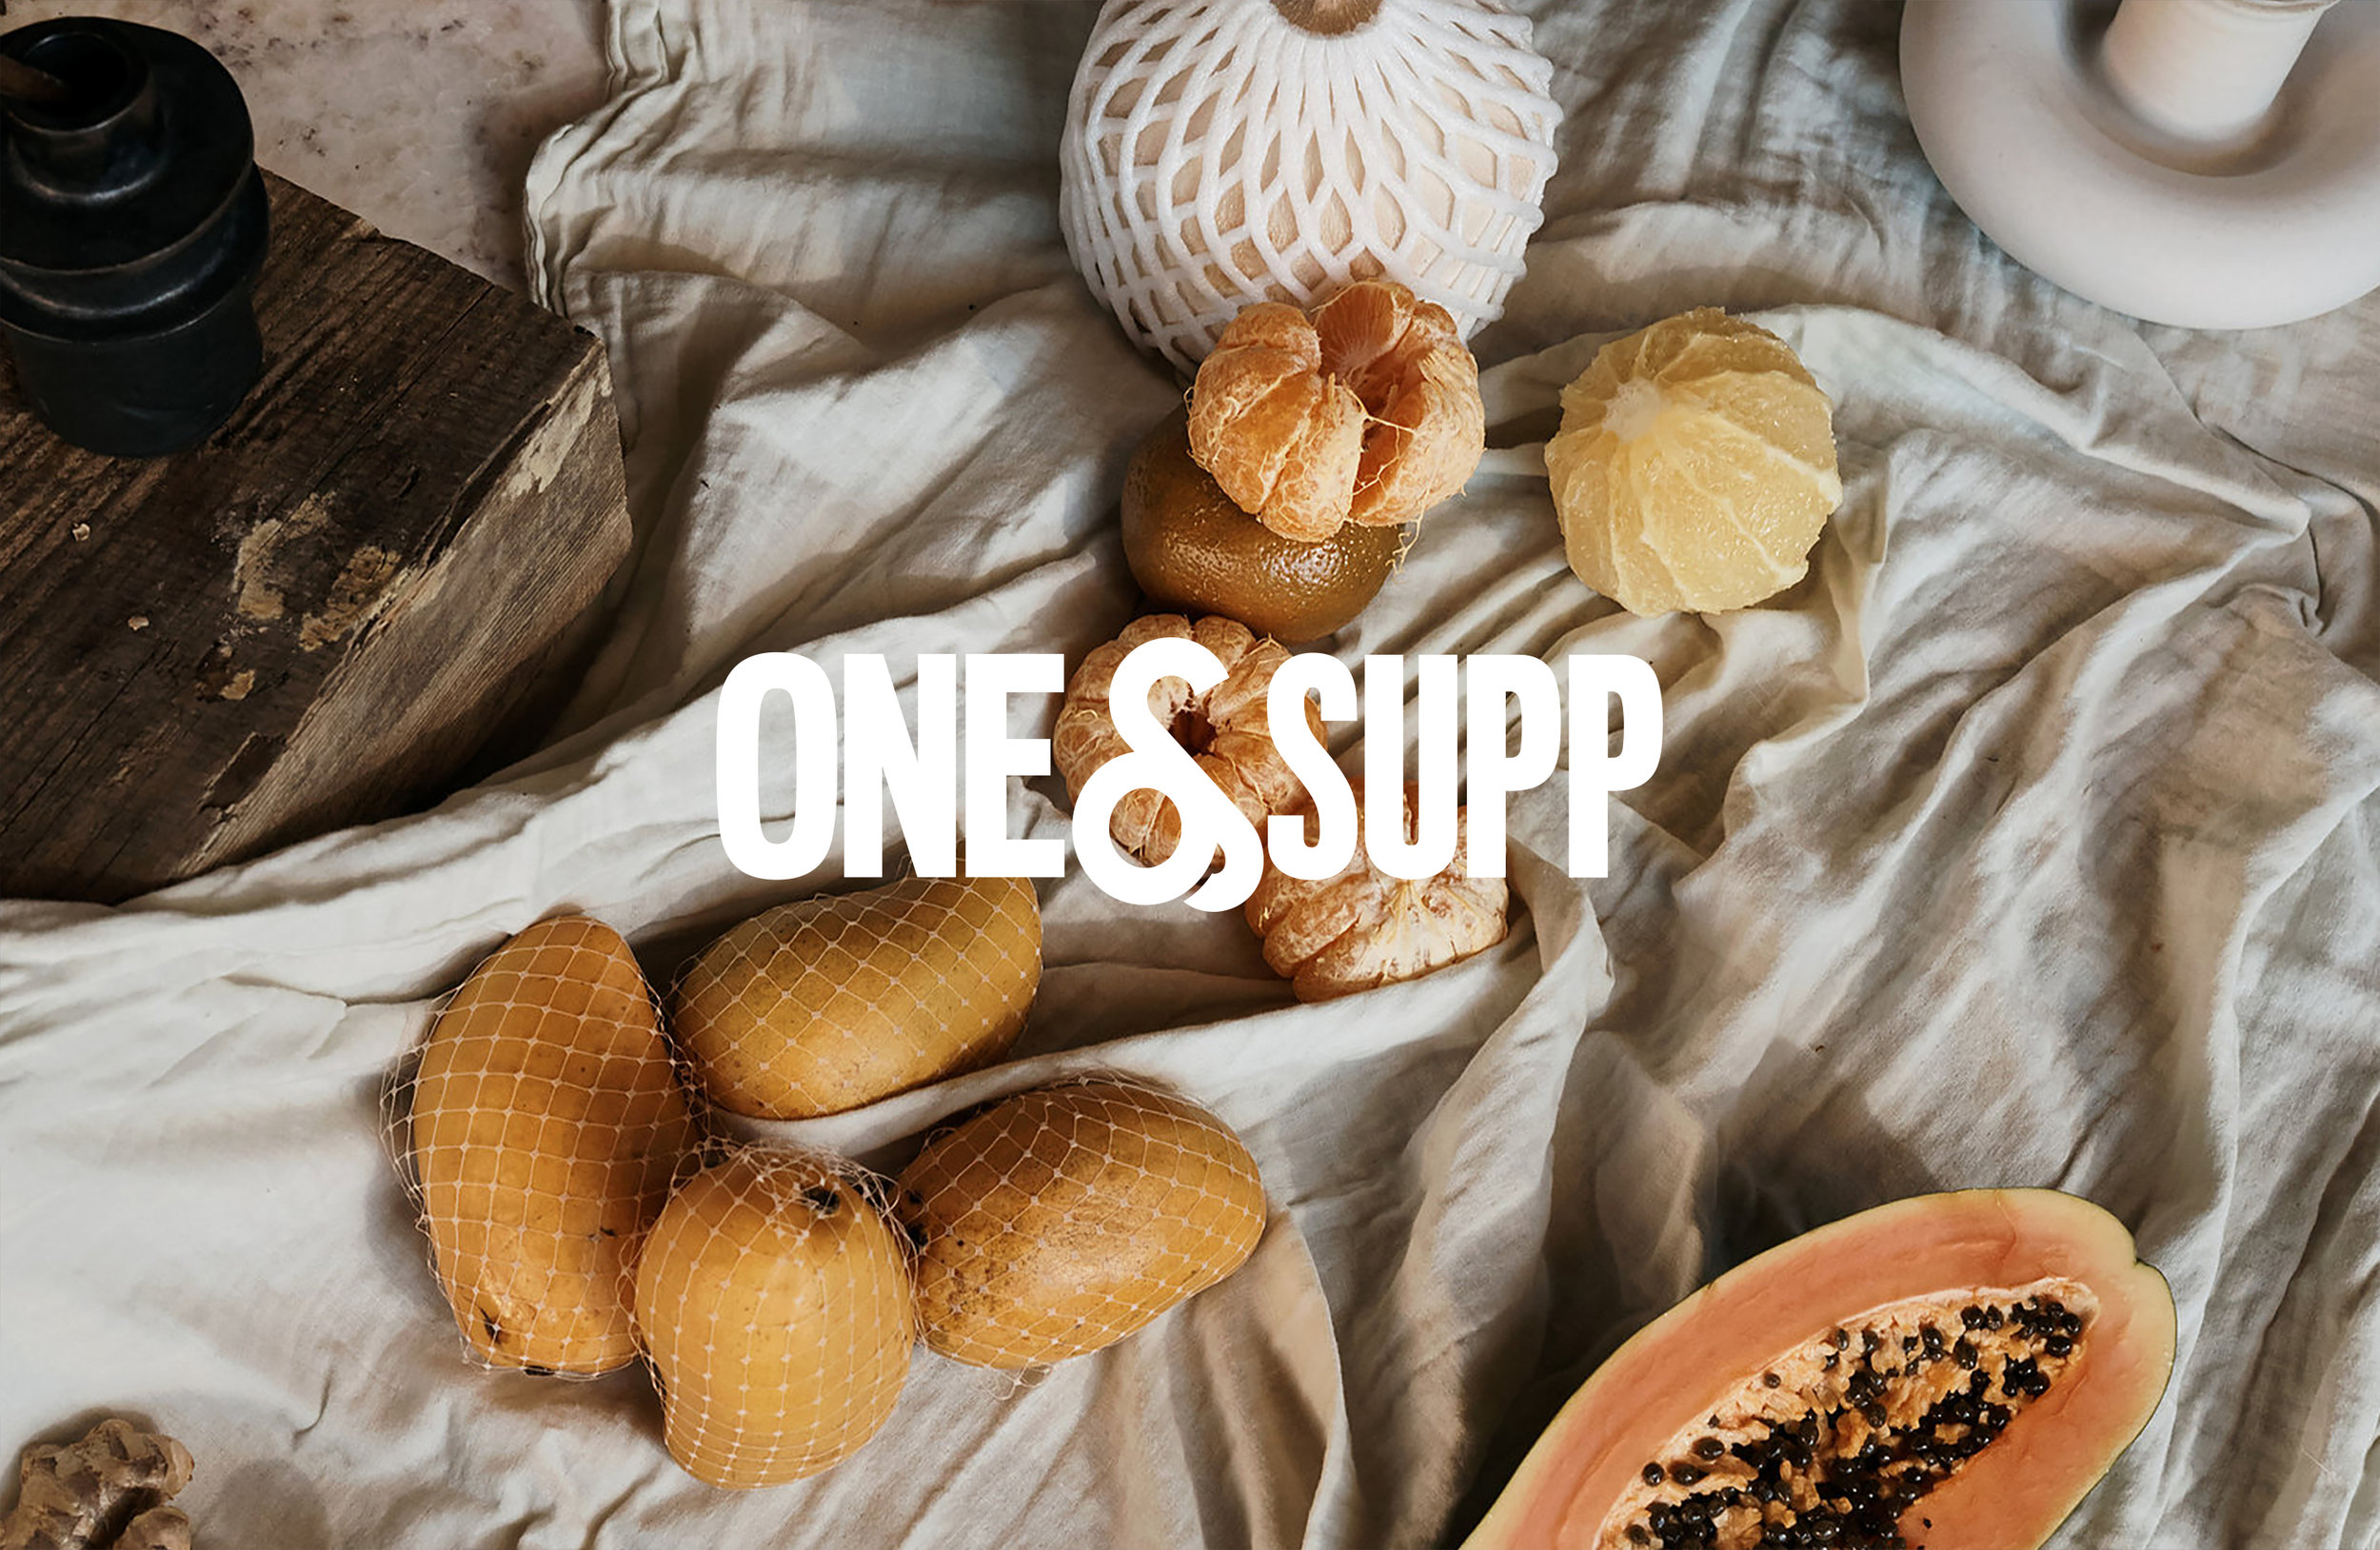 One & Supp